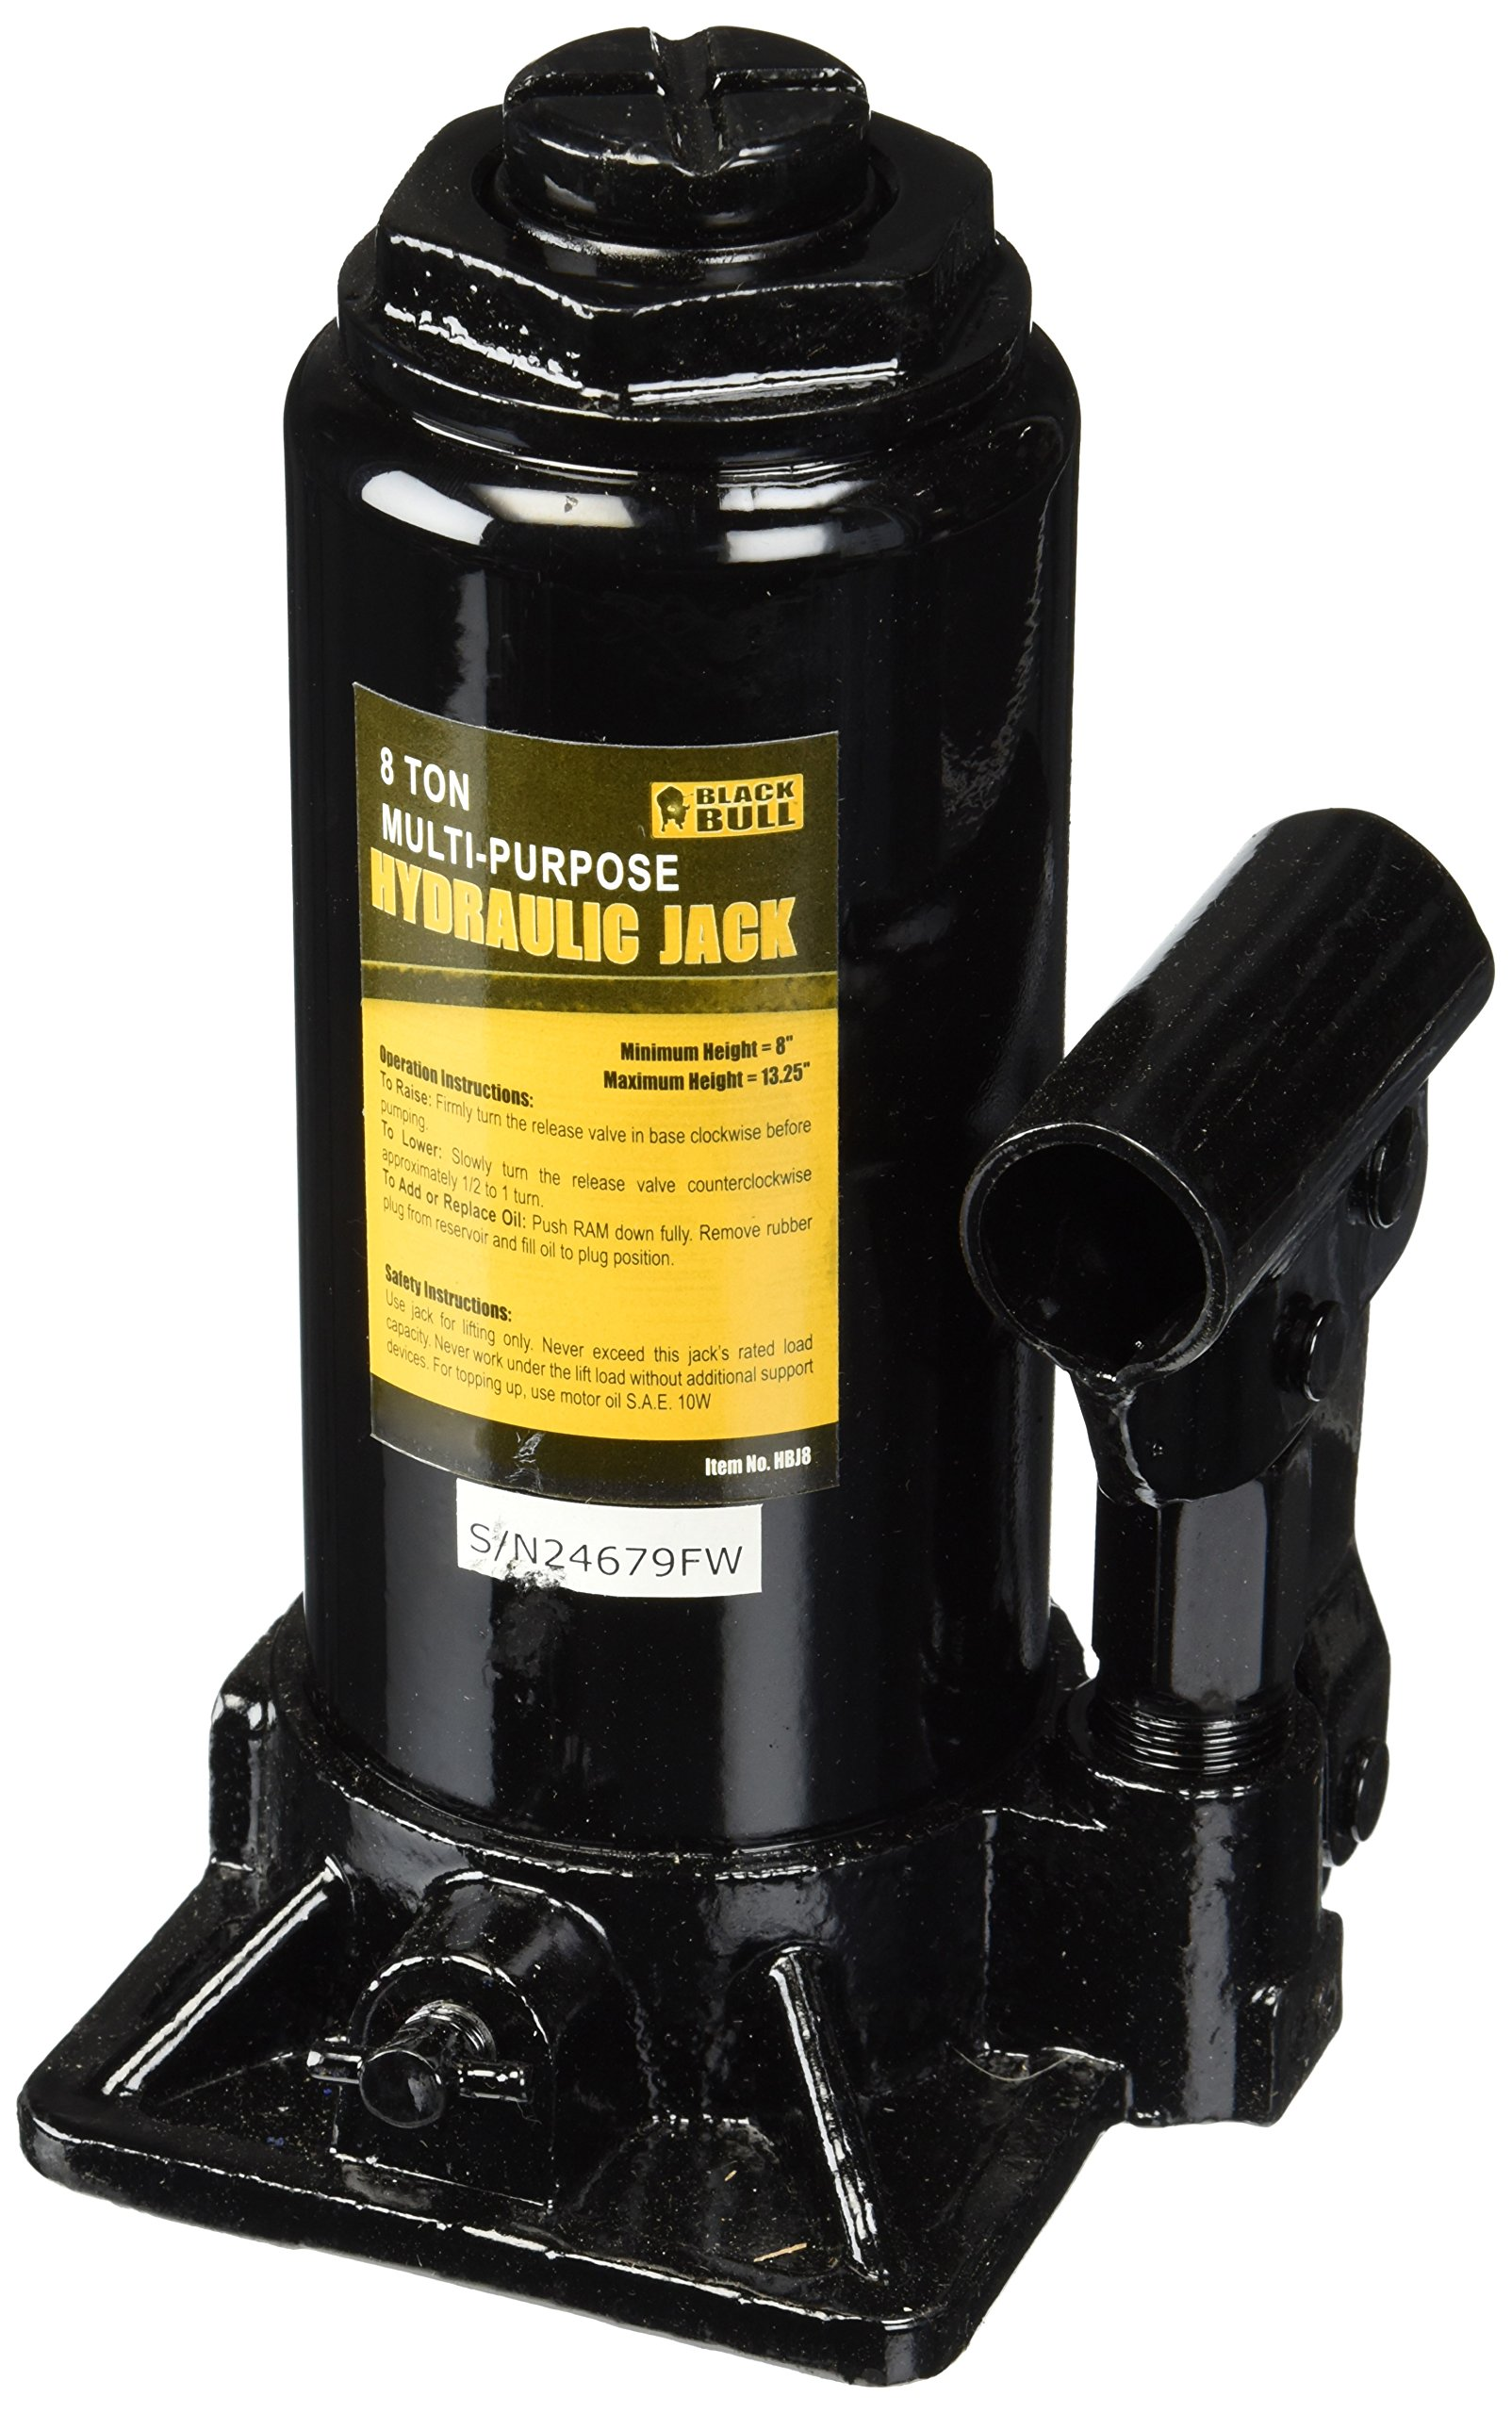 Black Bull HBJ8 8 Ton Multi-Purpose Hydraulic Jack